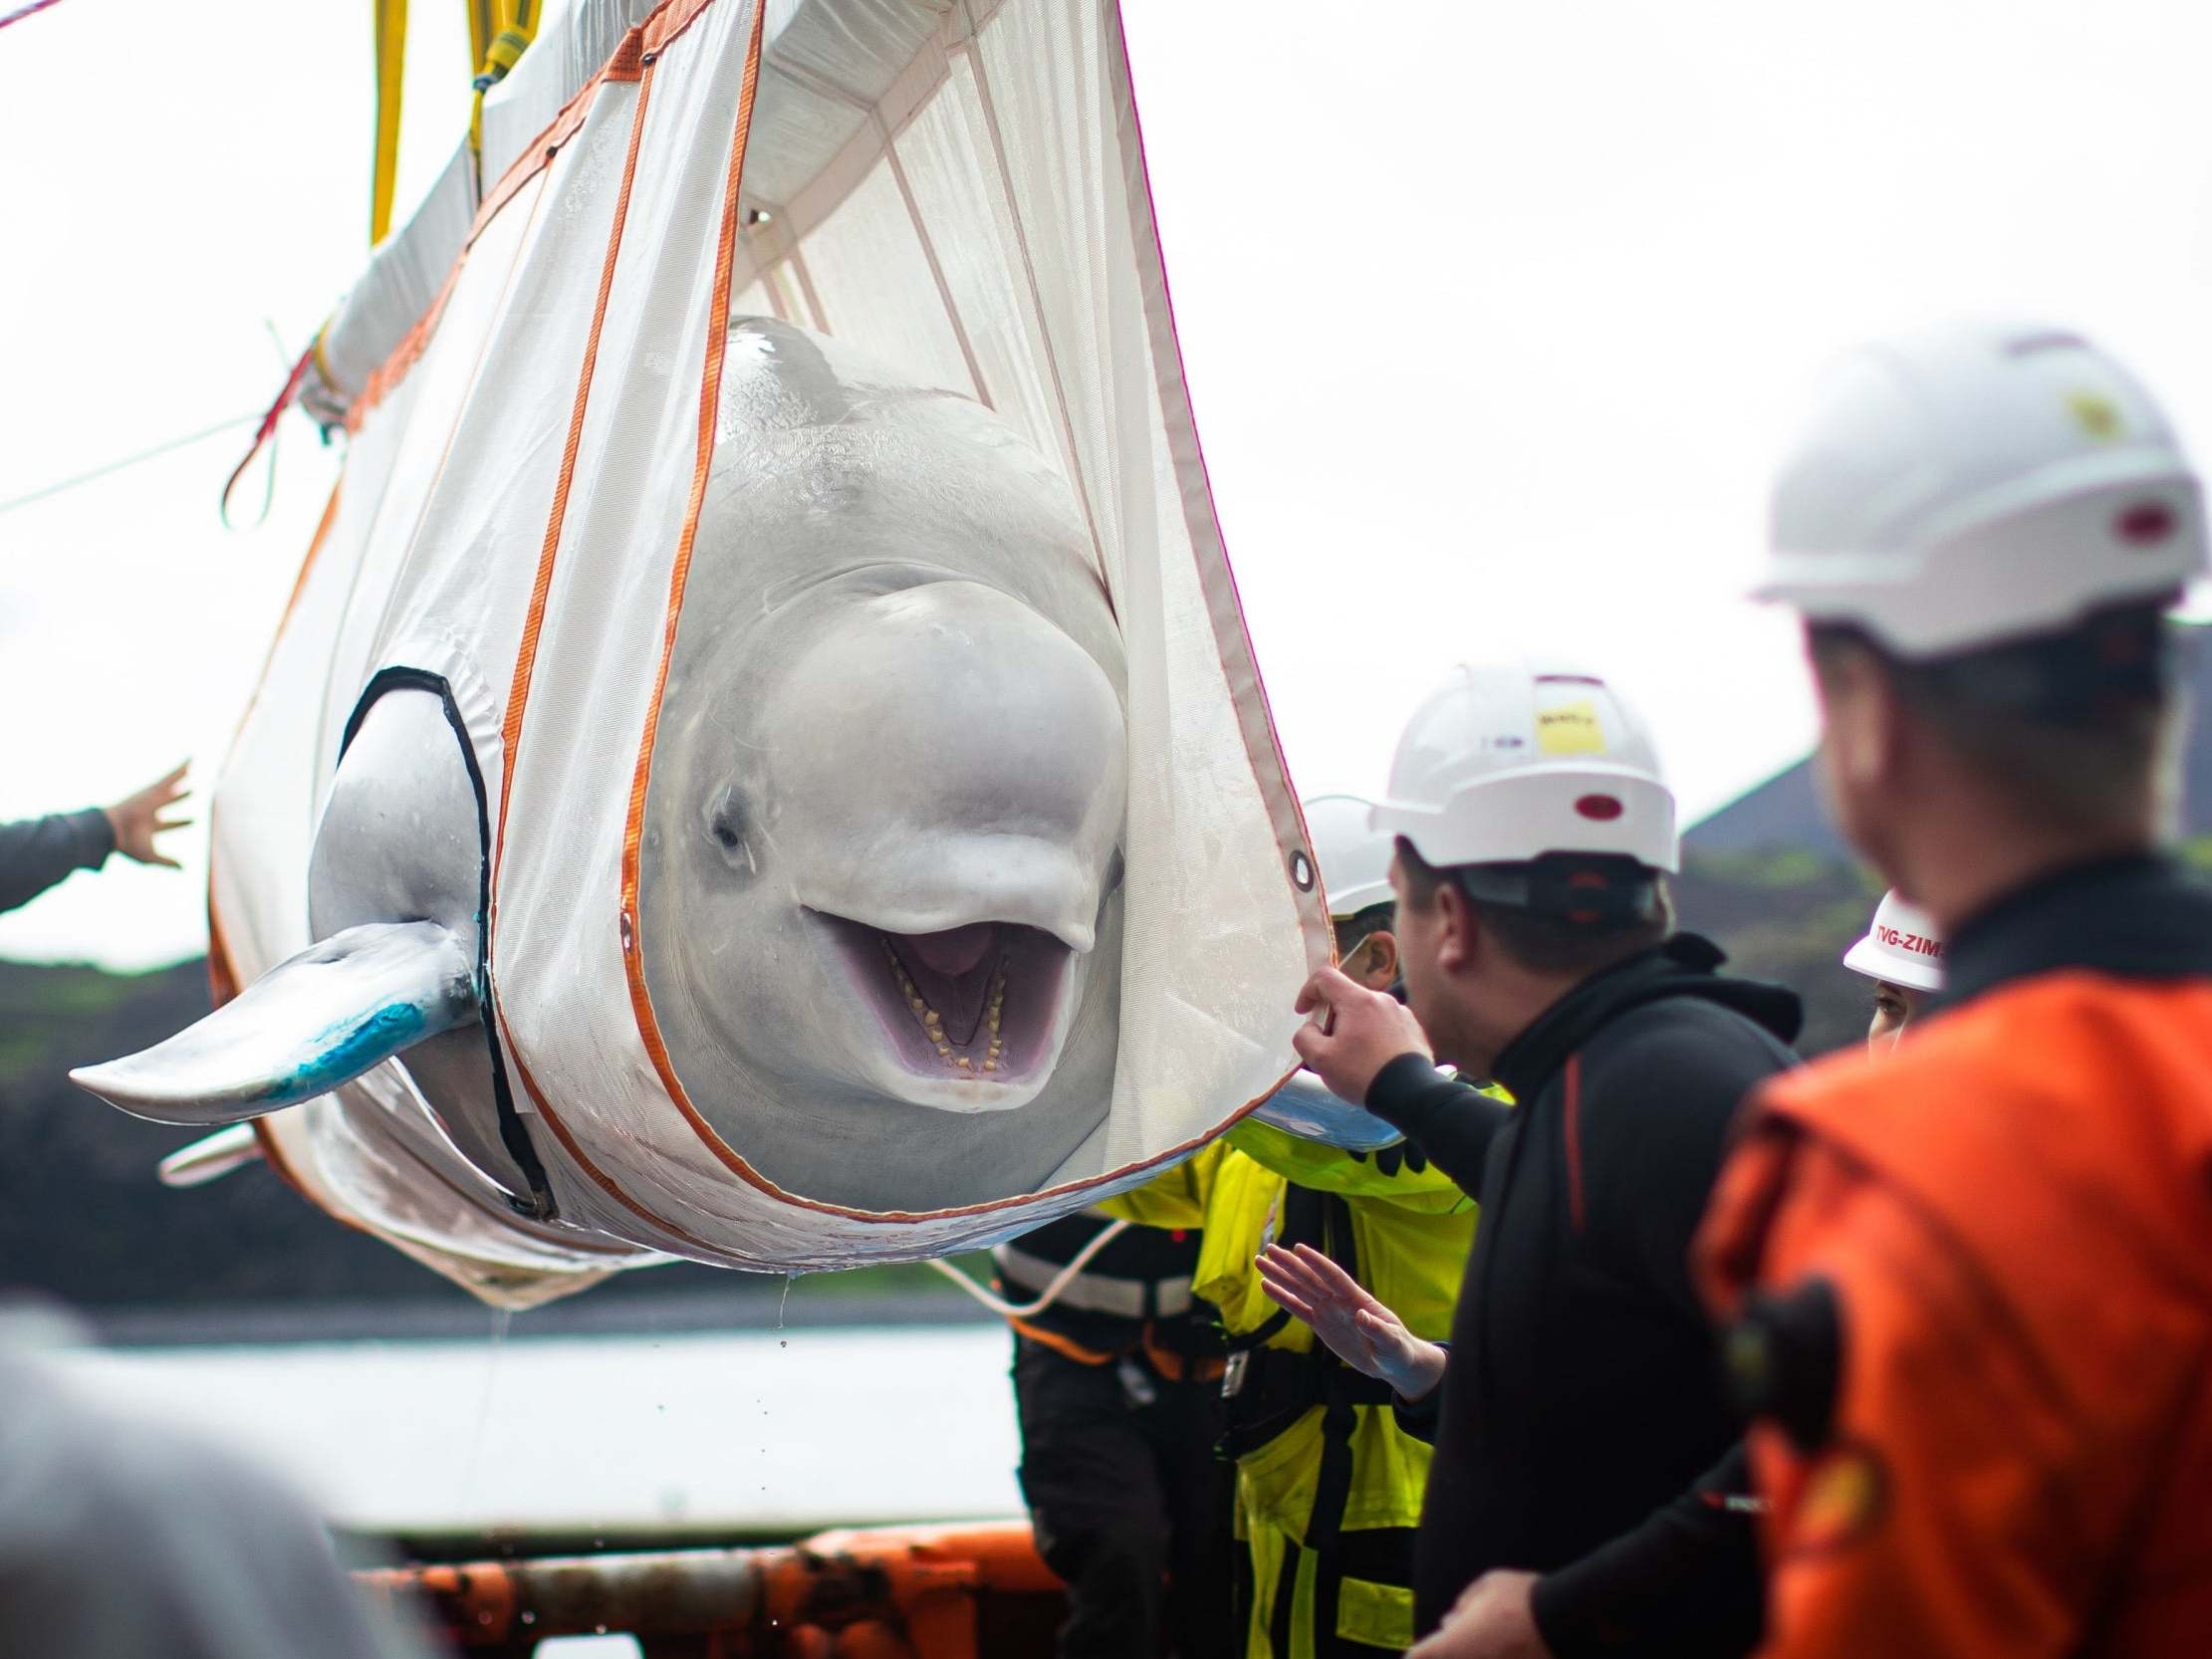 Beluga Whales Transported 6,000 Miles From Captivity in China to New Ocean Refuge